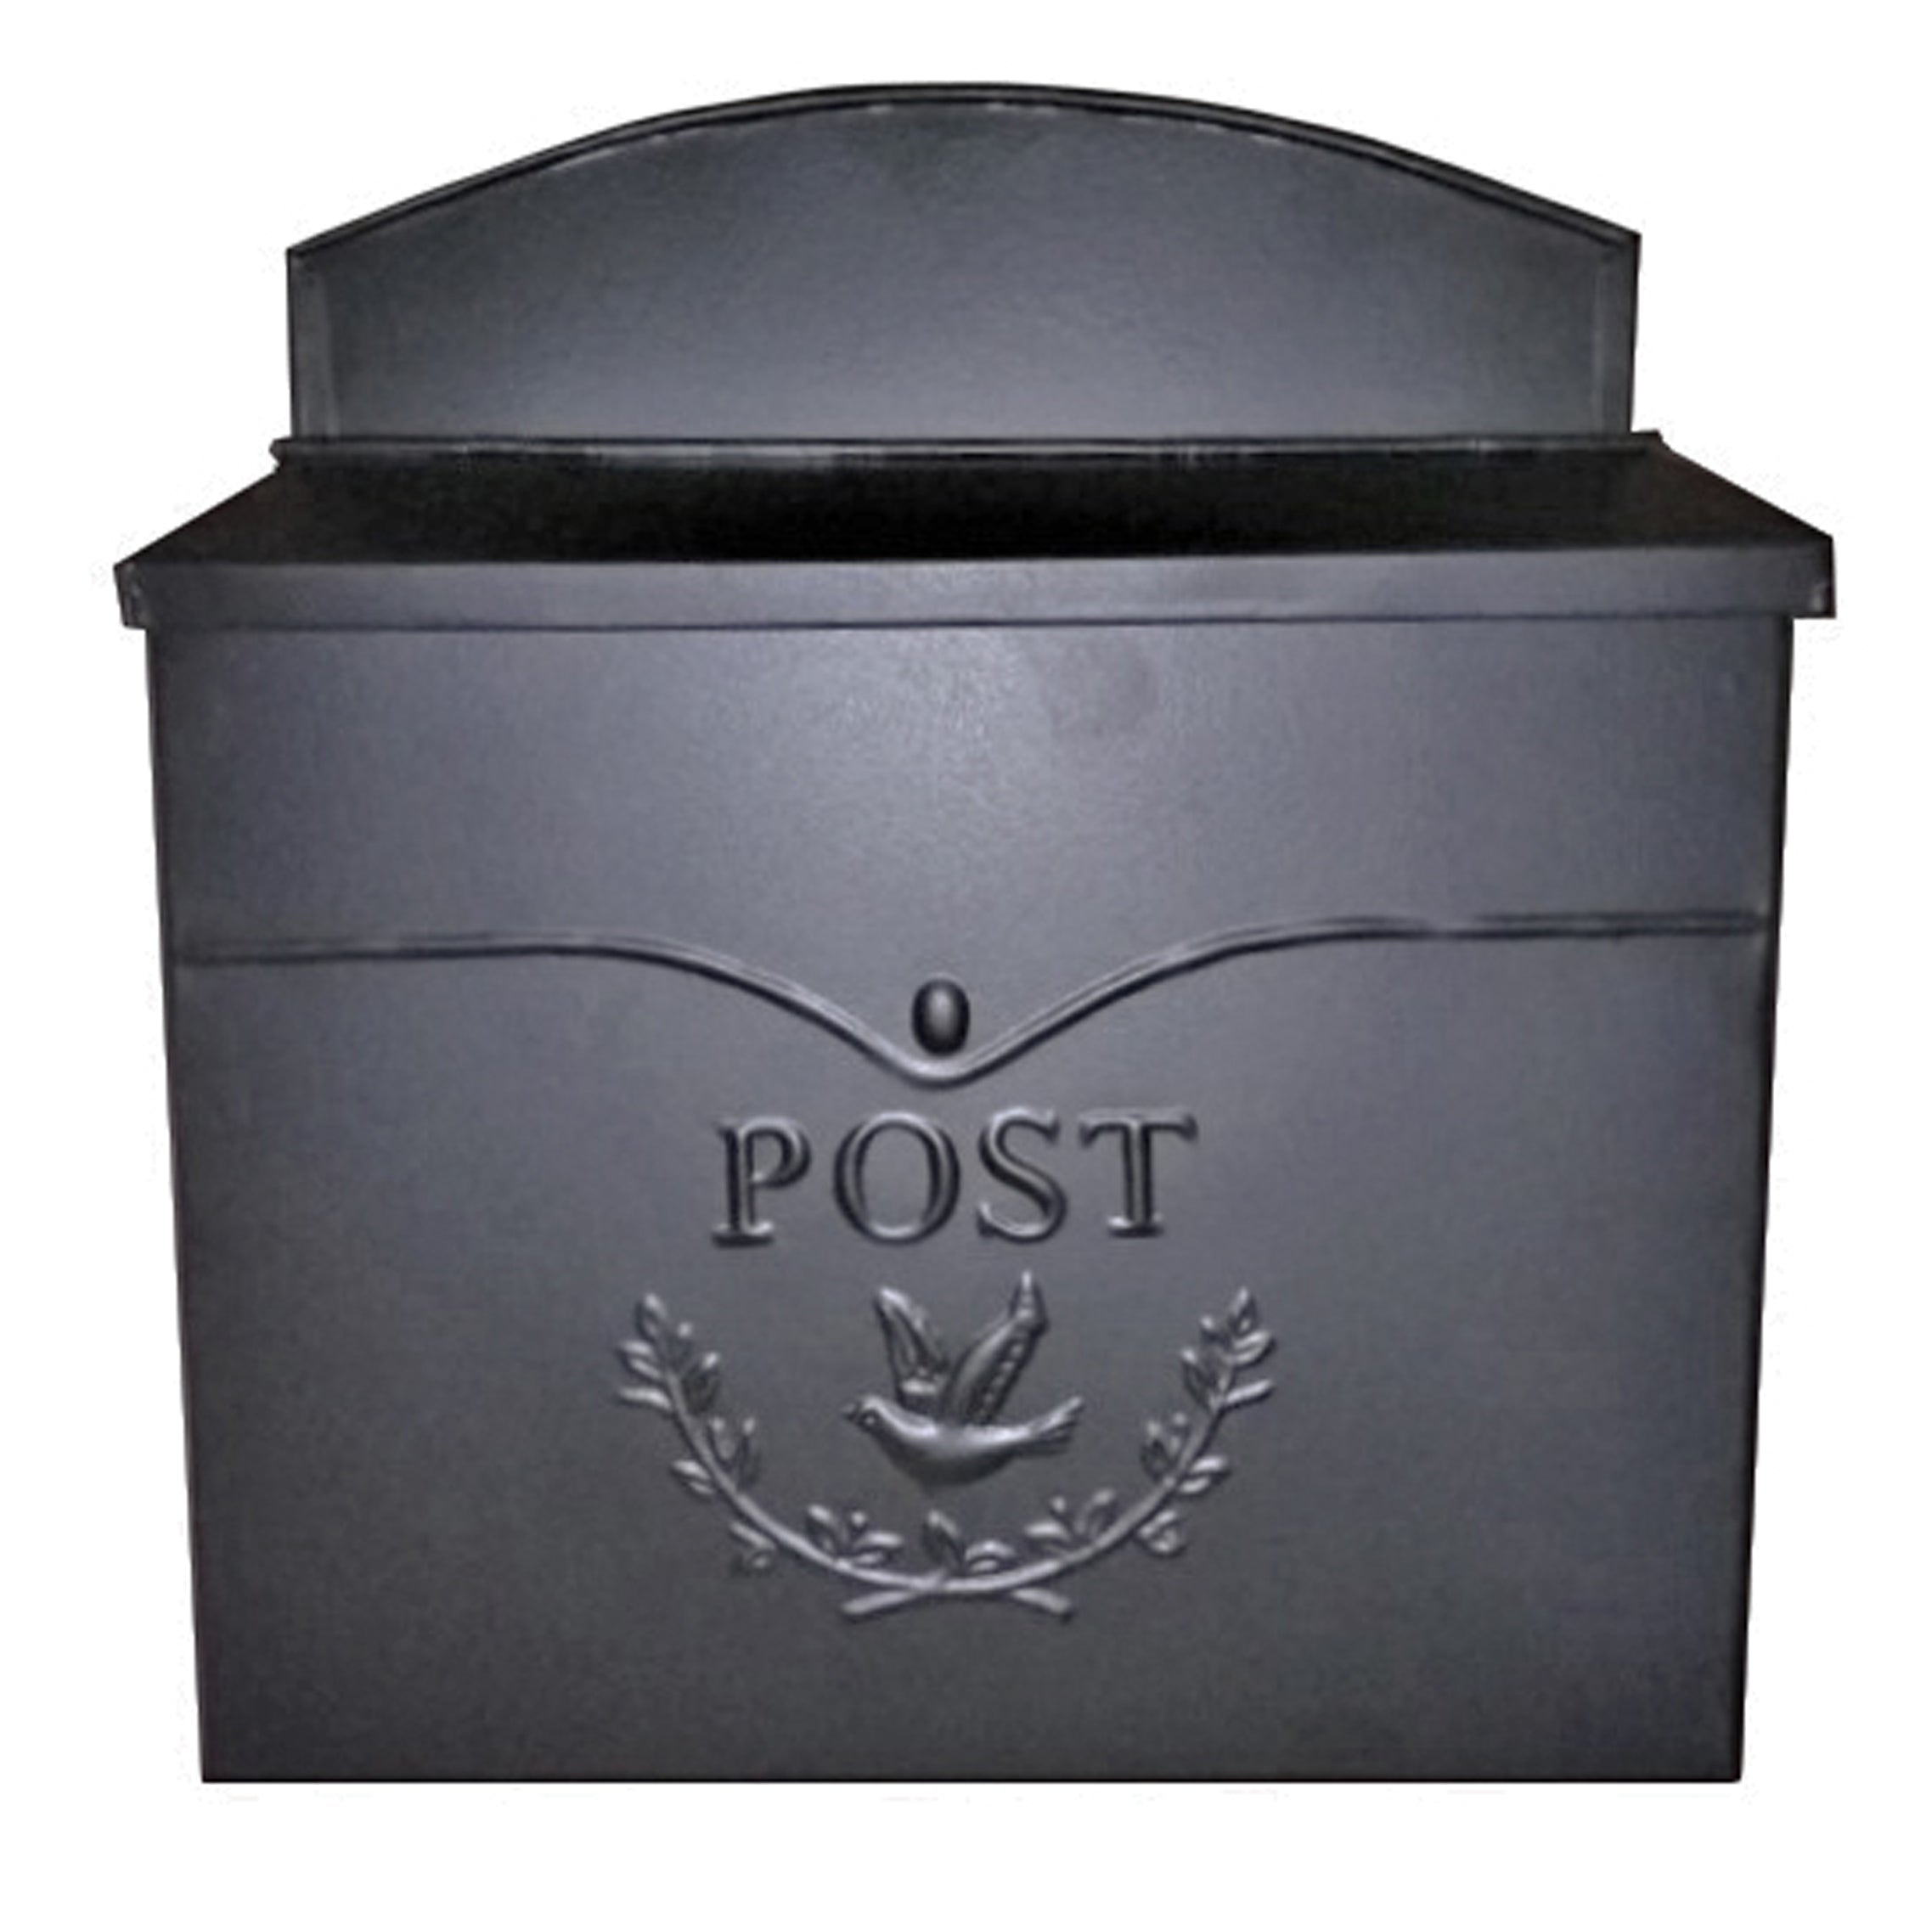 Chelsea Post Mailbox, Black - 11.5x4.8x13 in - My Country Home and Garden